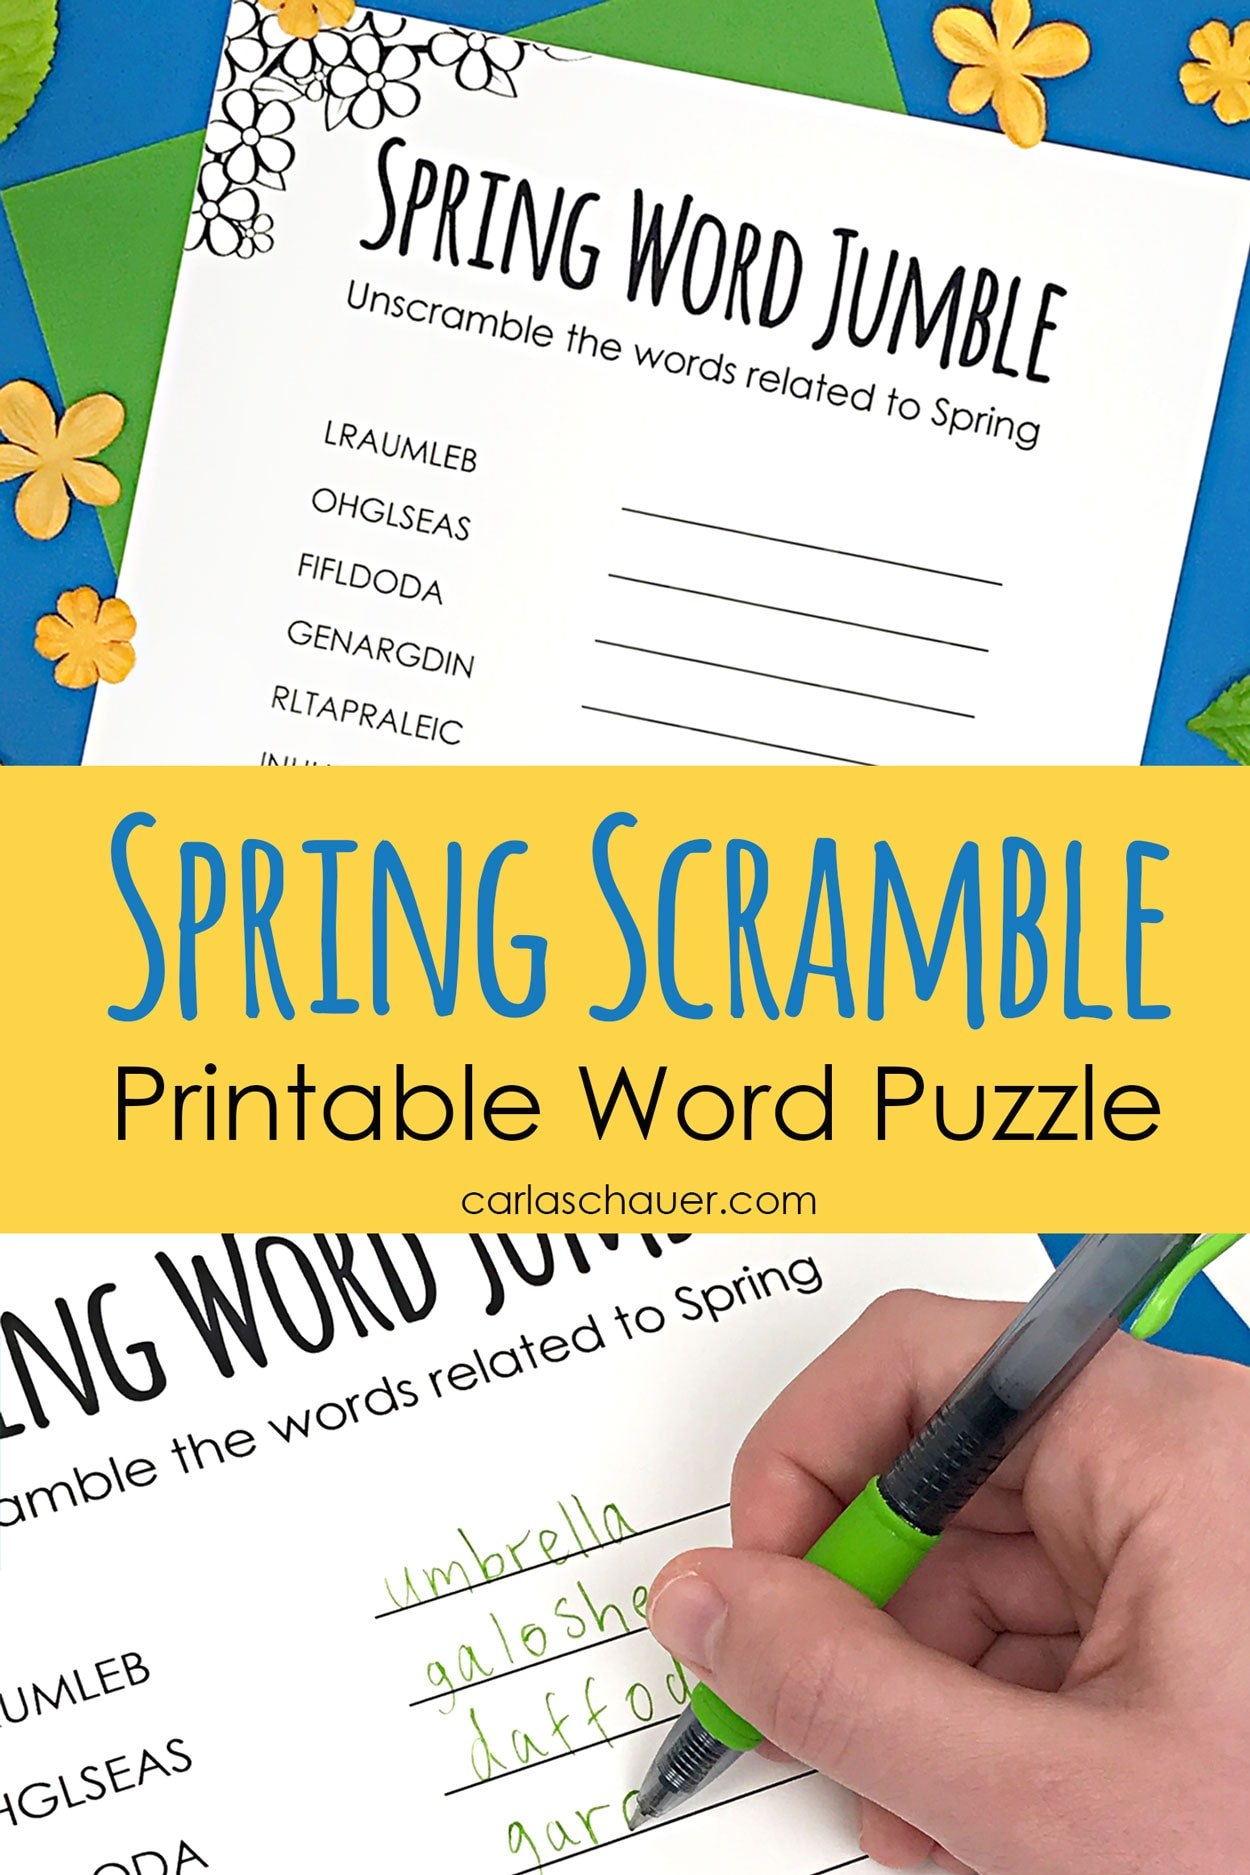 Collage of Spring word scramble photos with descriptive text.